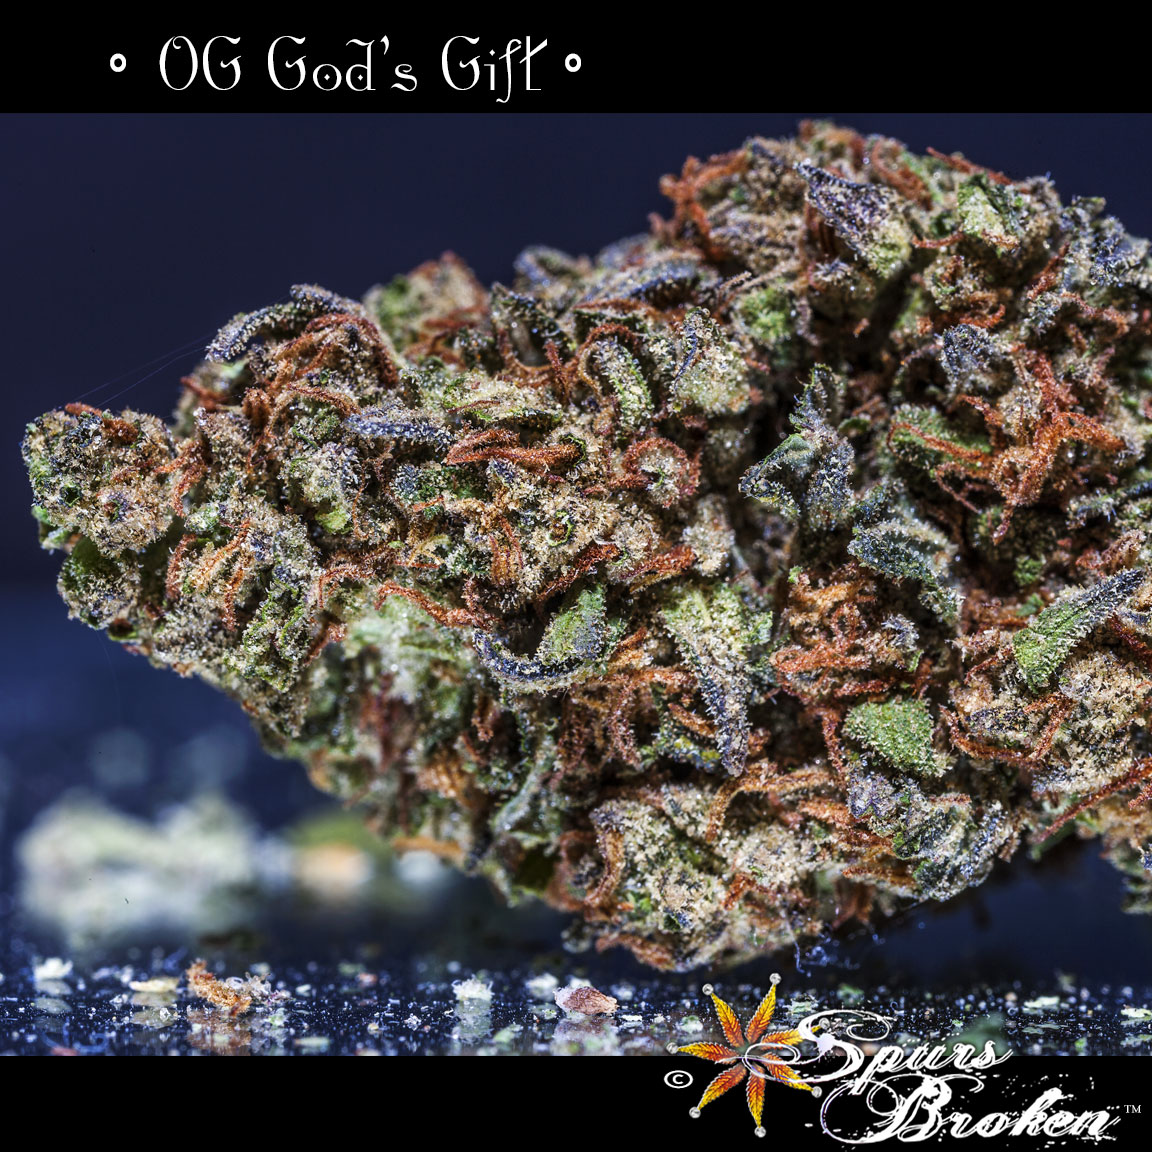 OG God's Gift - Cannabis Macro Photography by Spurs Broken (Robert R. Sanders)